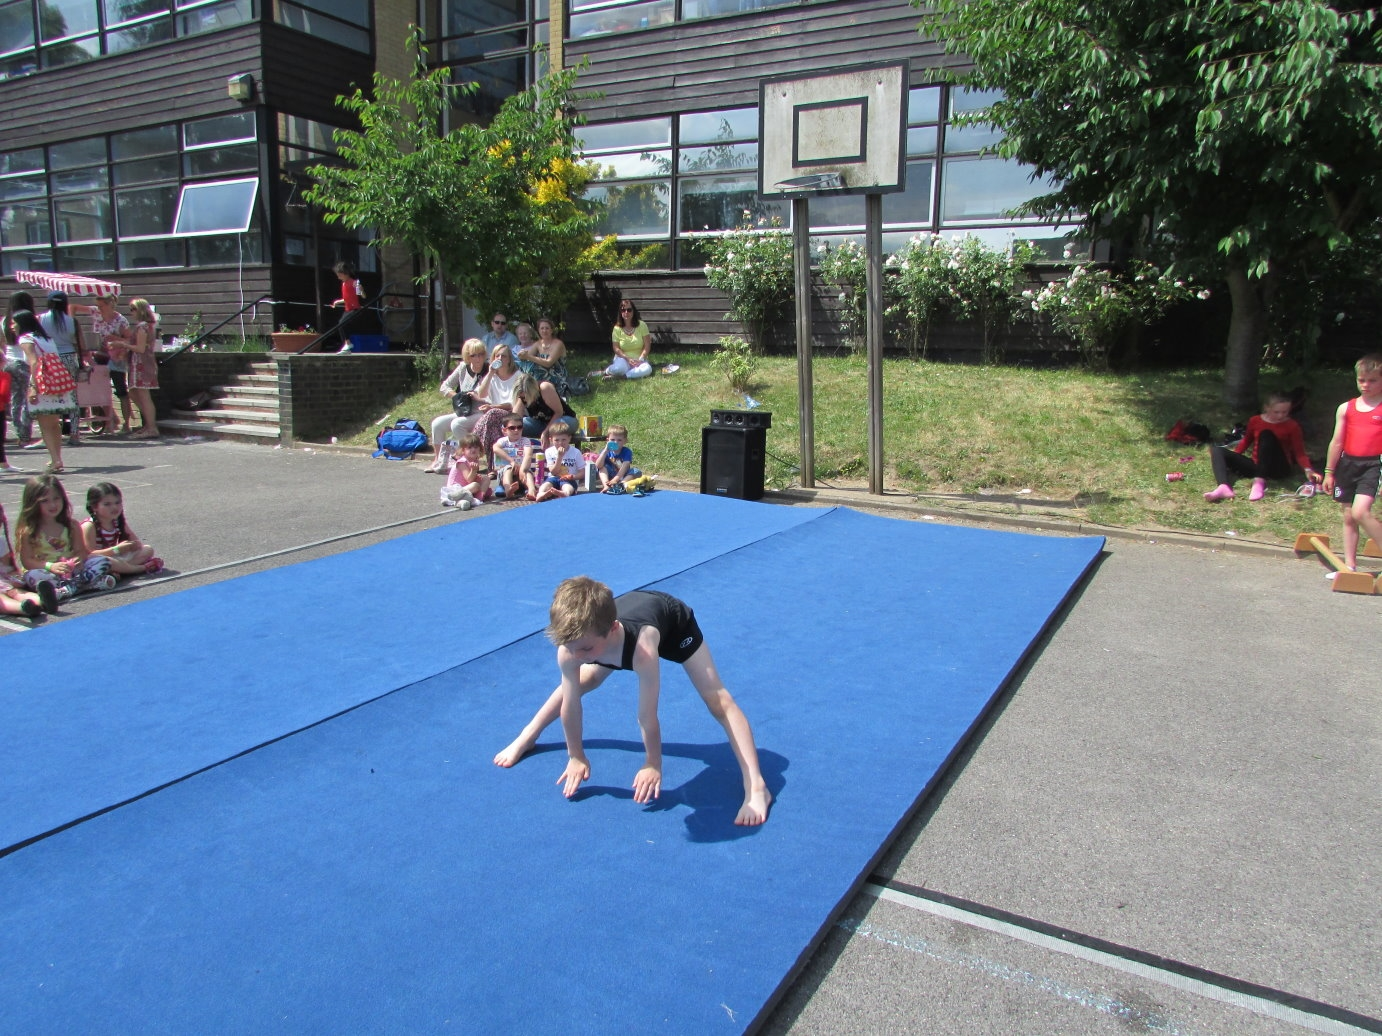 Children like doing Gymnastics